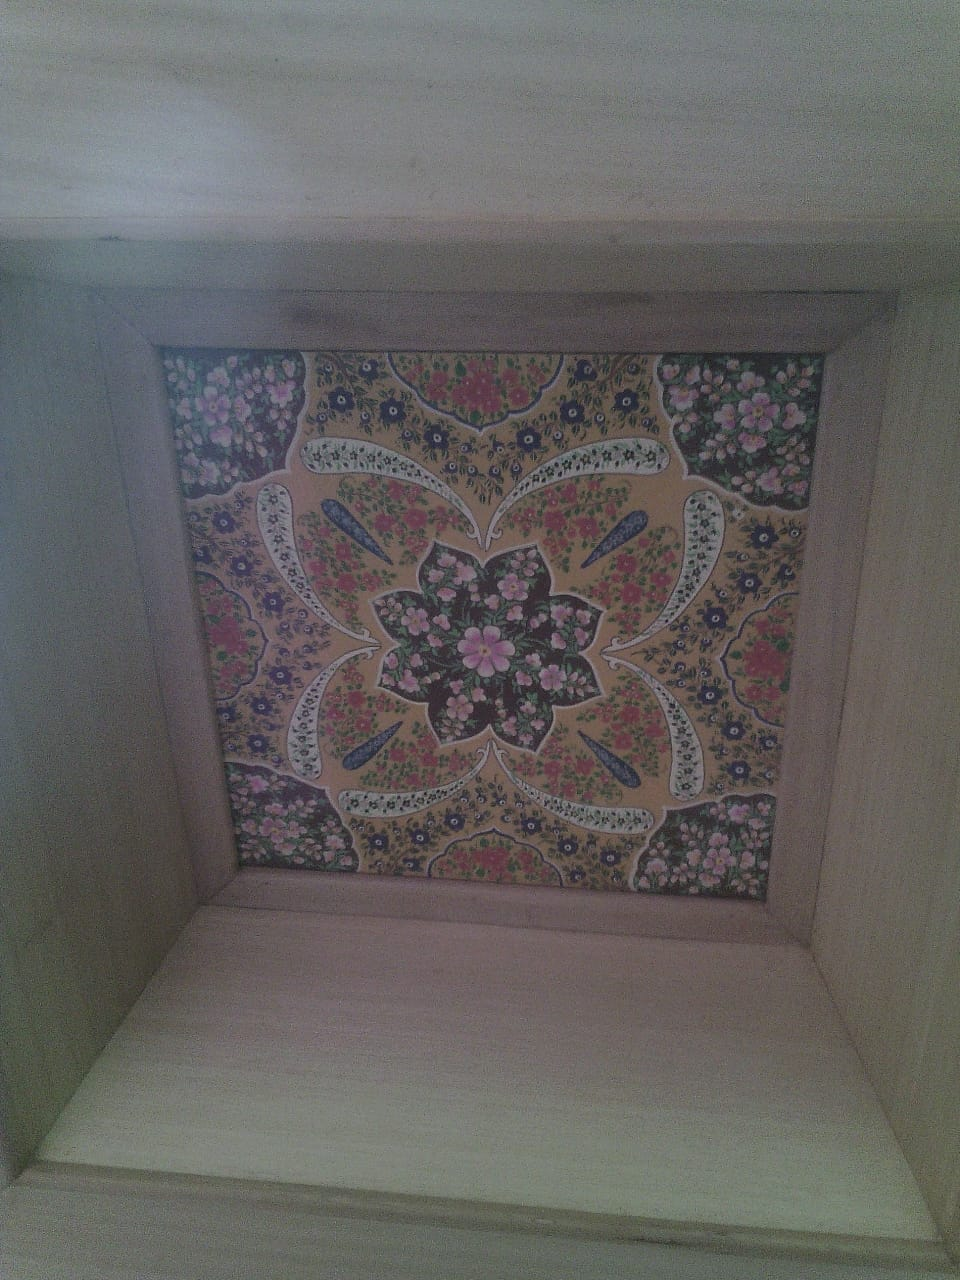 ceiling-checkered-flora, mughal art, wall art